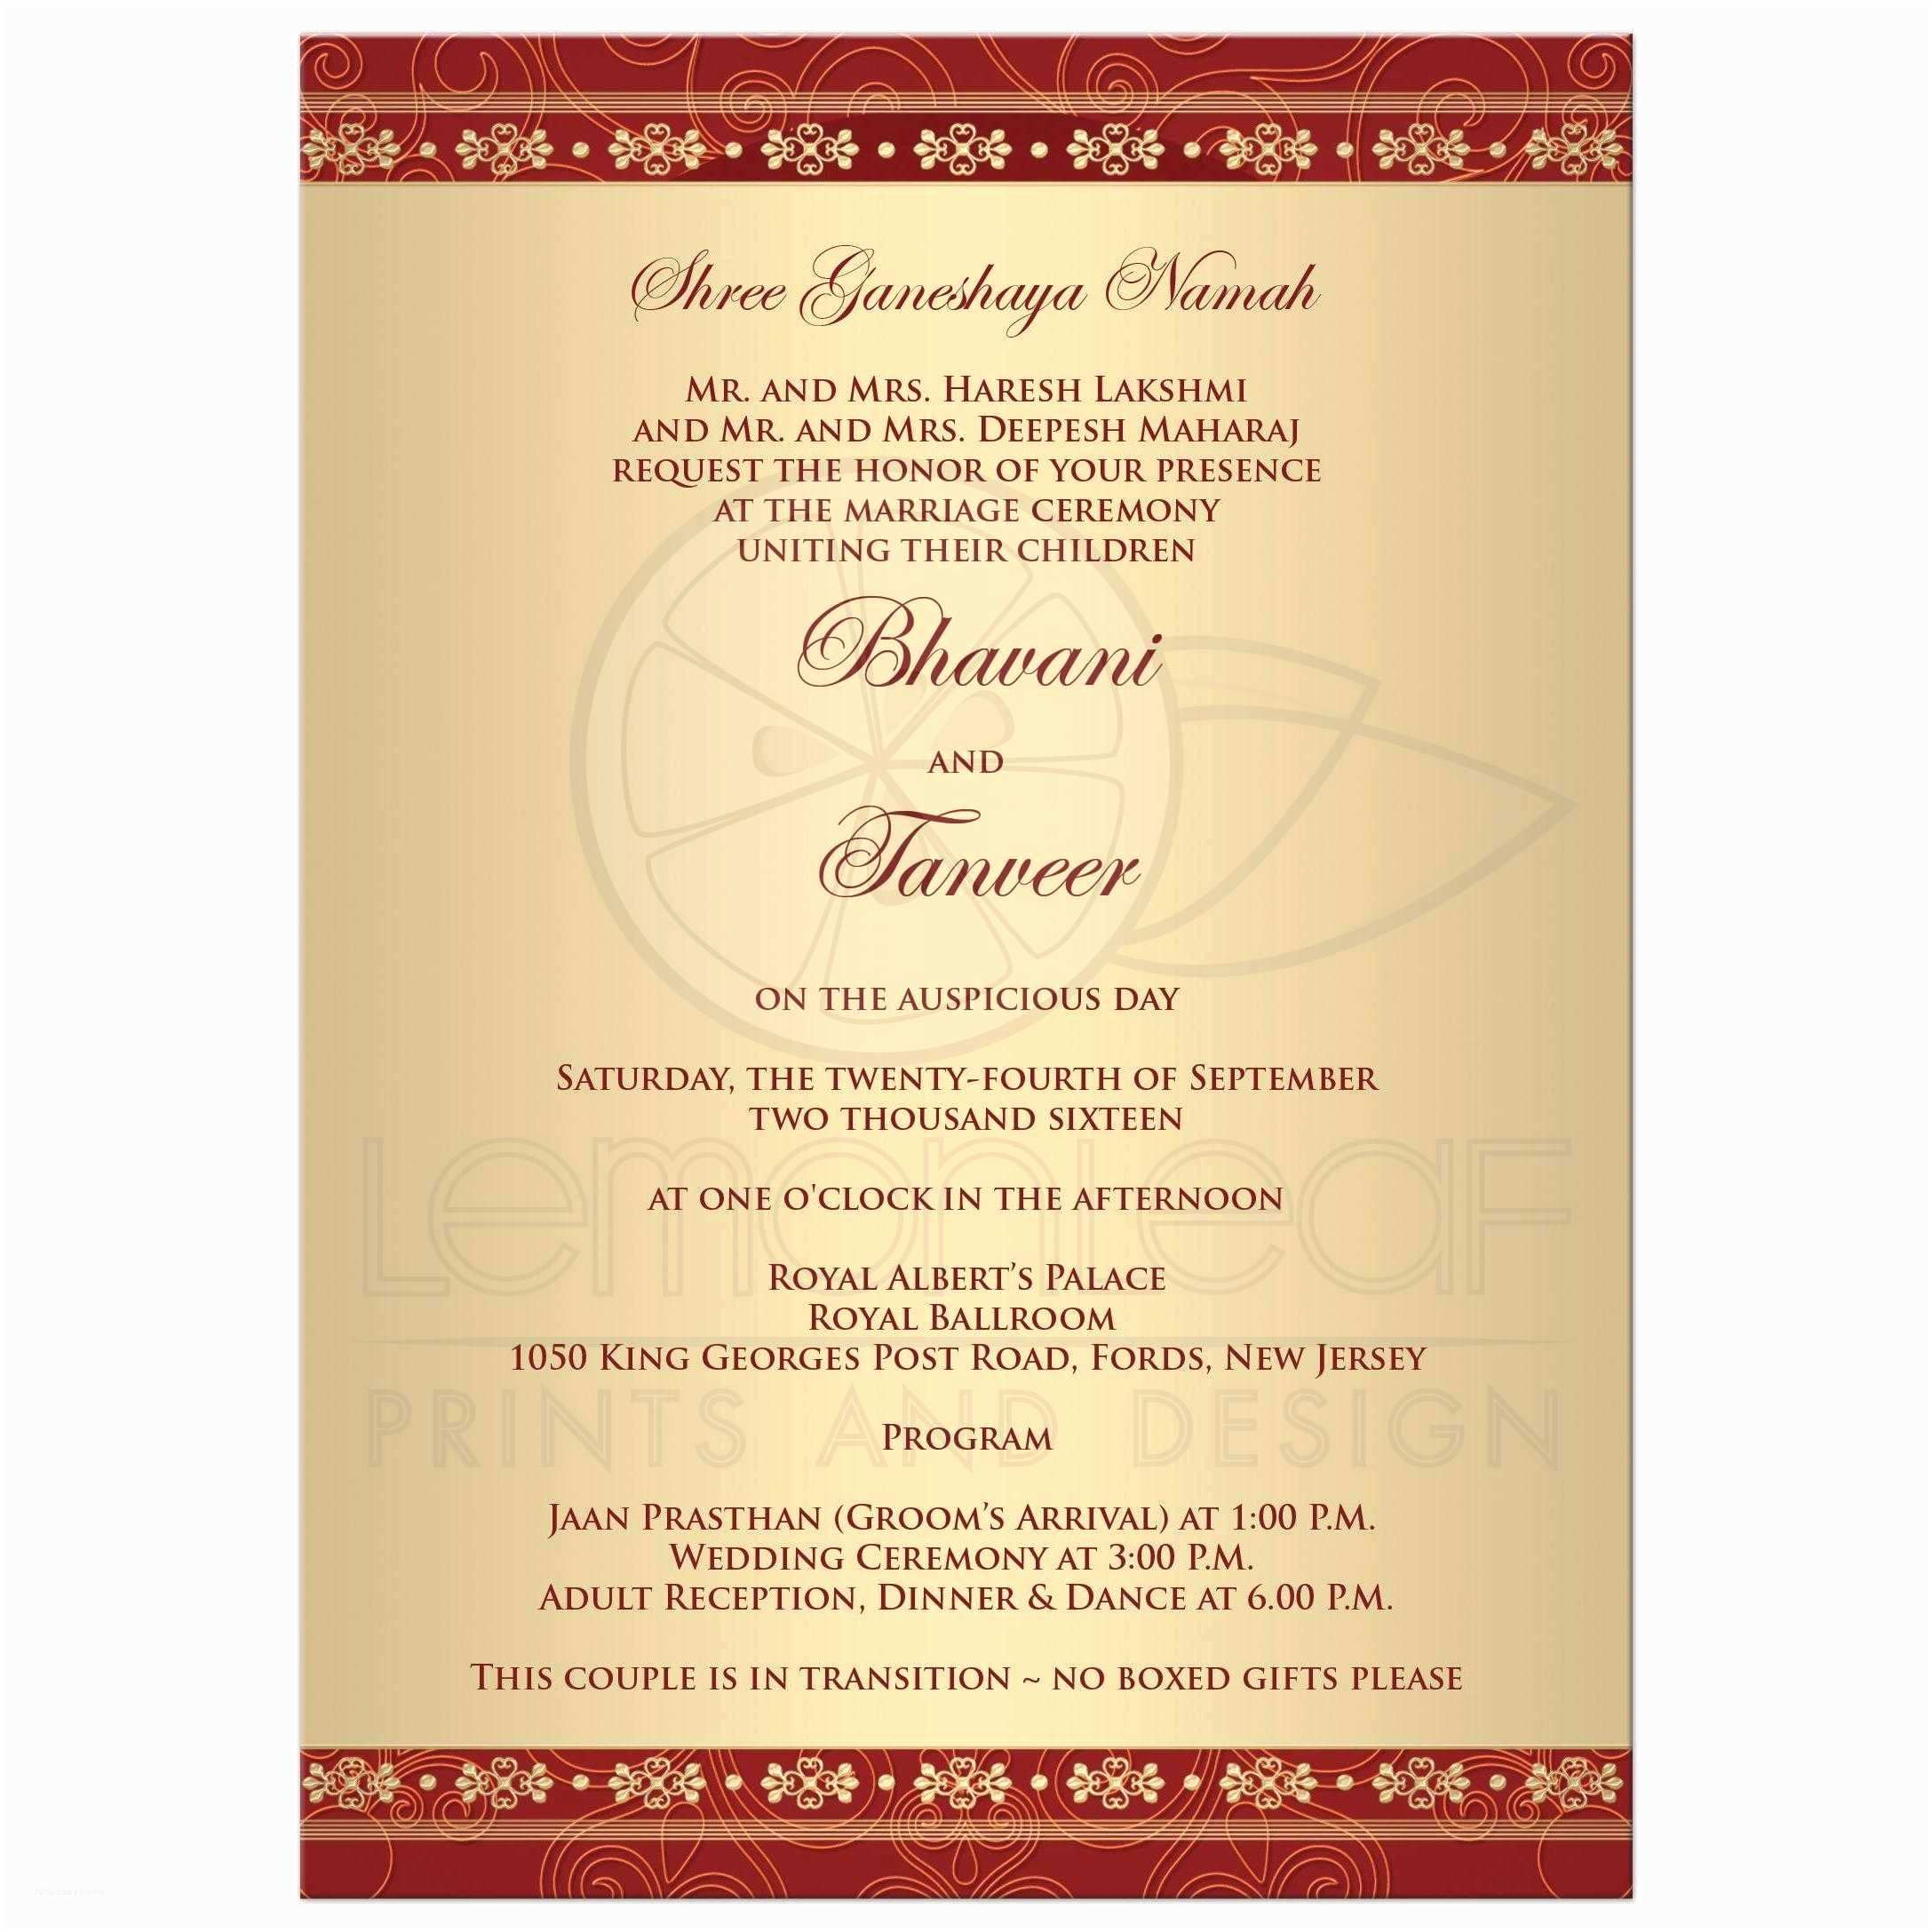 Personal Wedding Invitation Personal Wedding Invitation Wordings Gallery Baby Shower